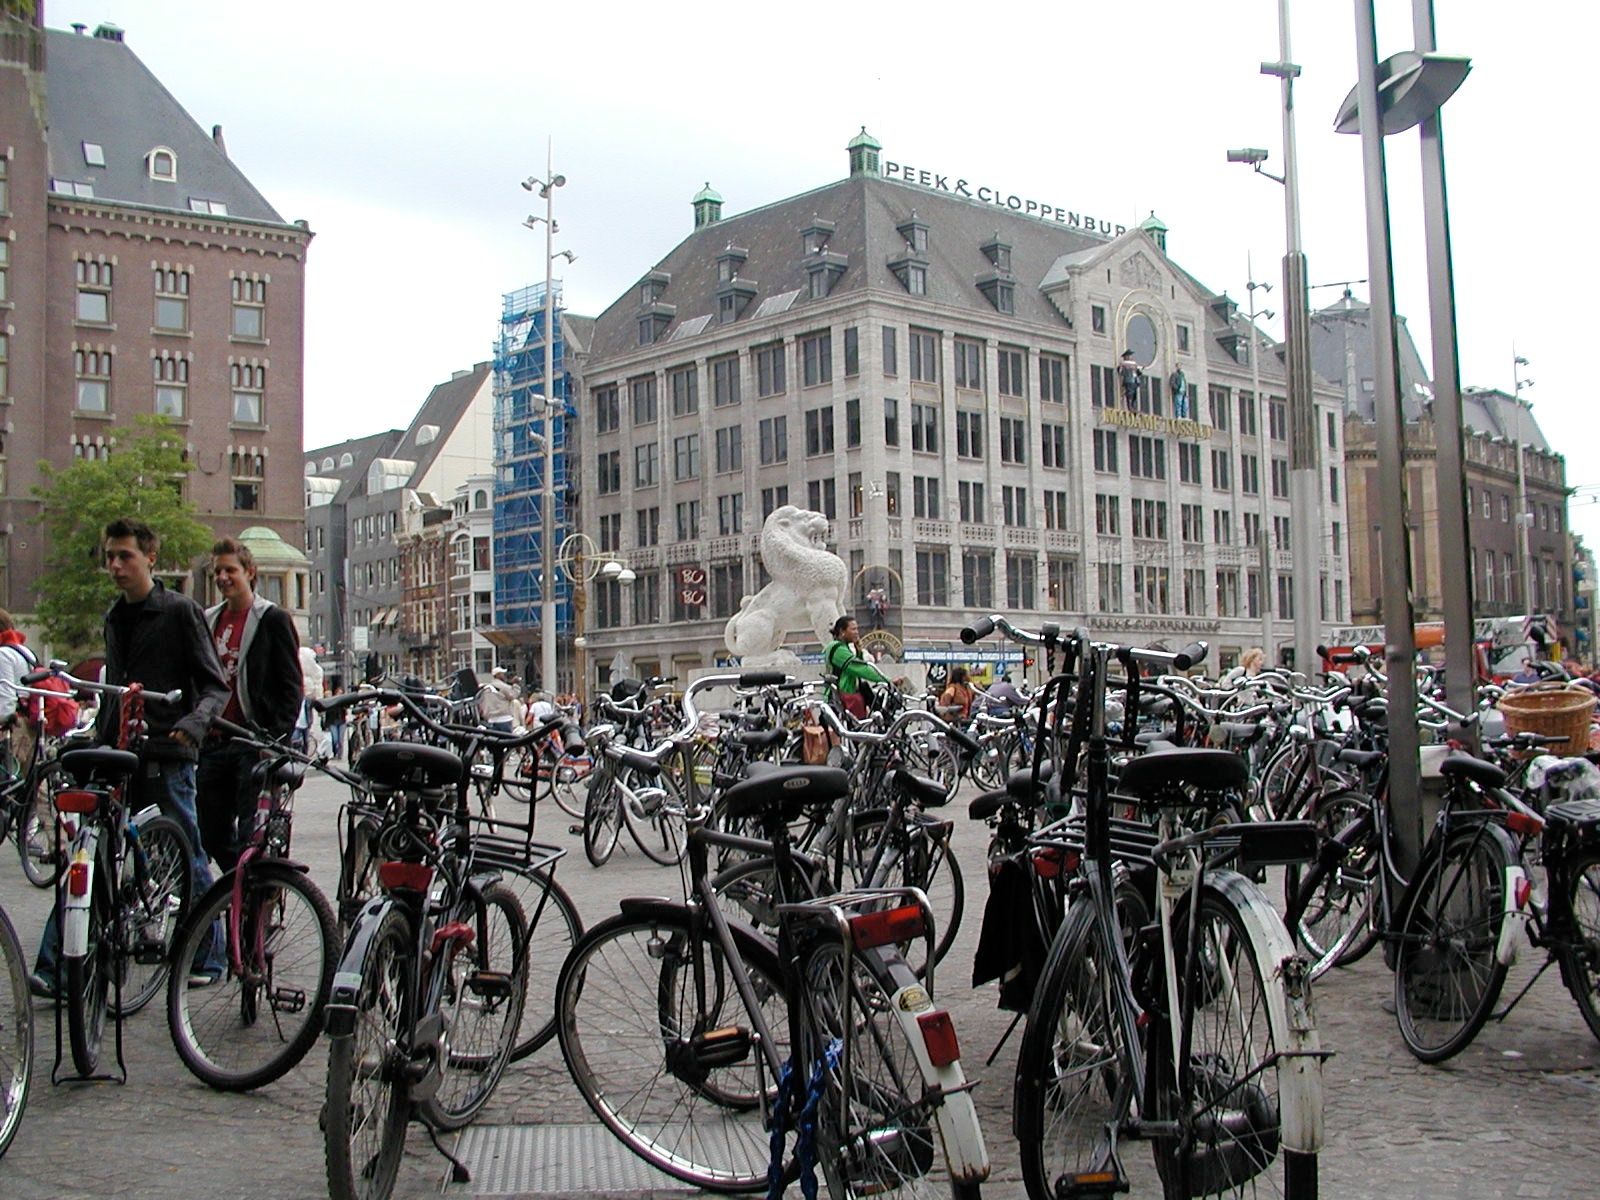 amsterdam bicycles author lucke charlie the dutc